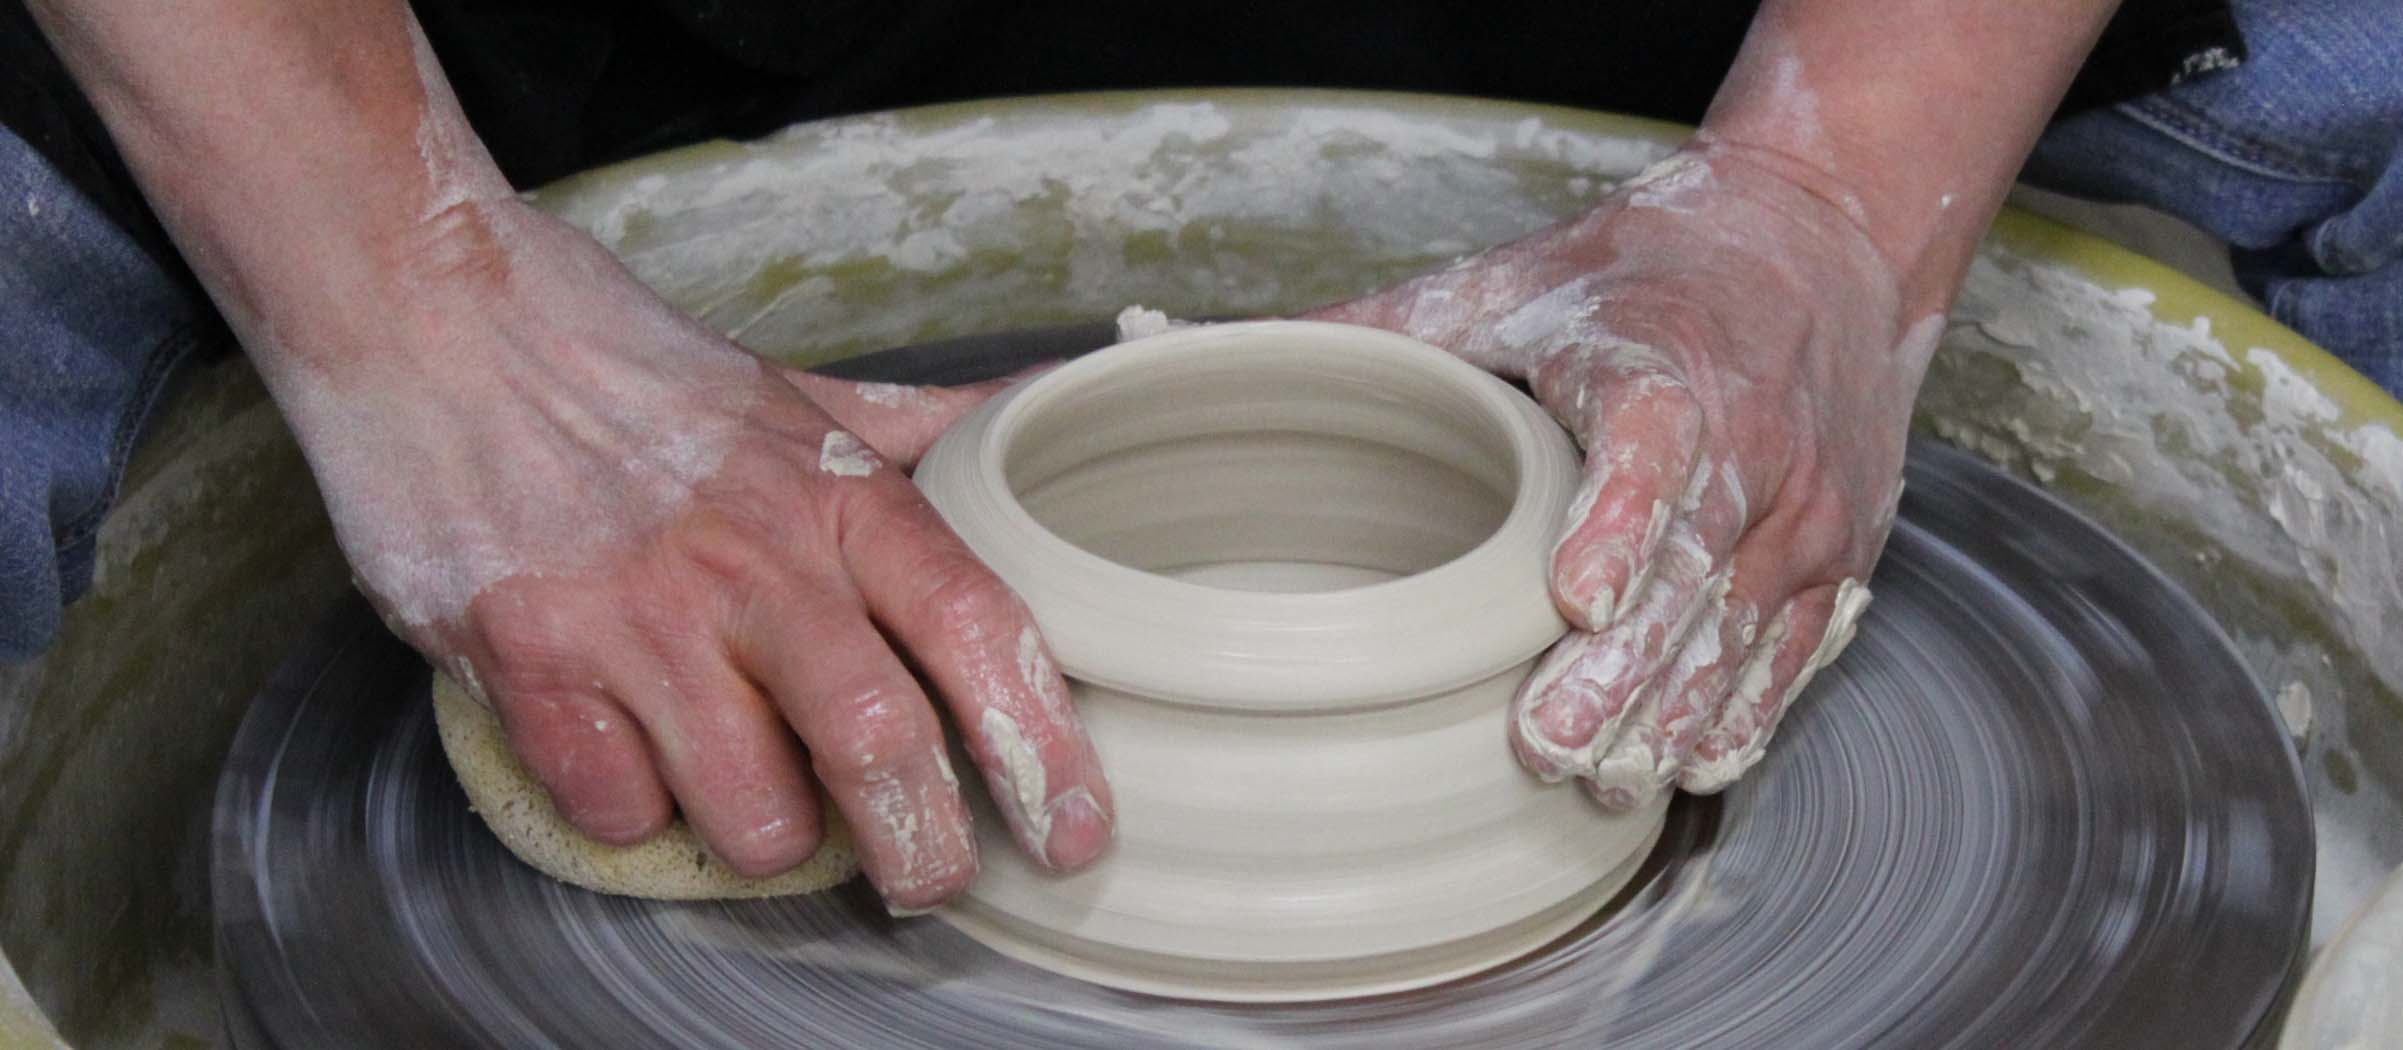 The Village Potters Teaching Center